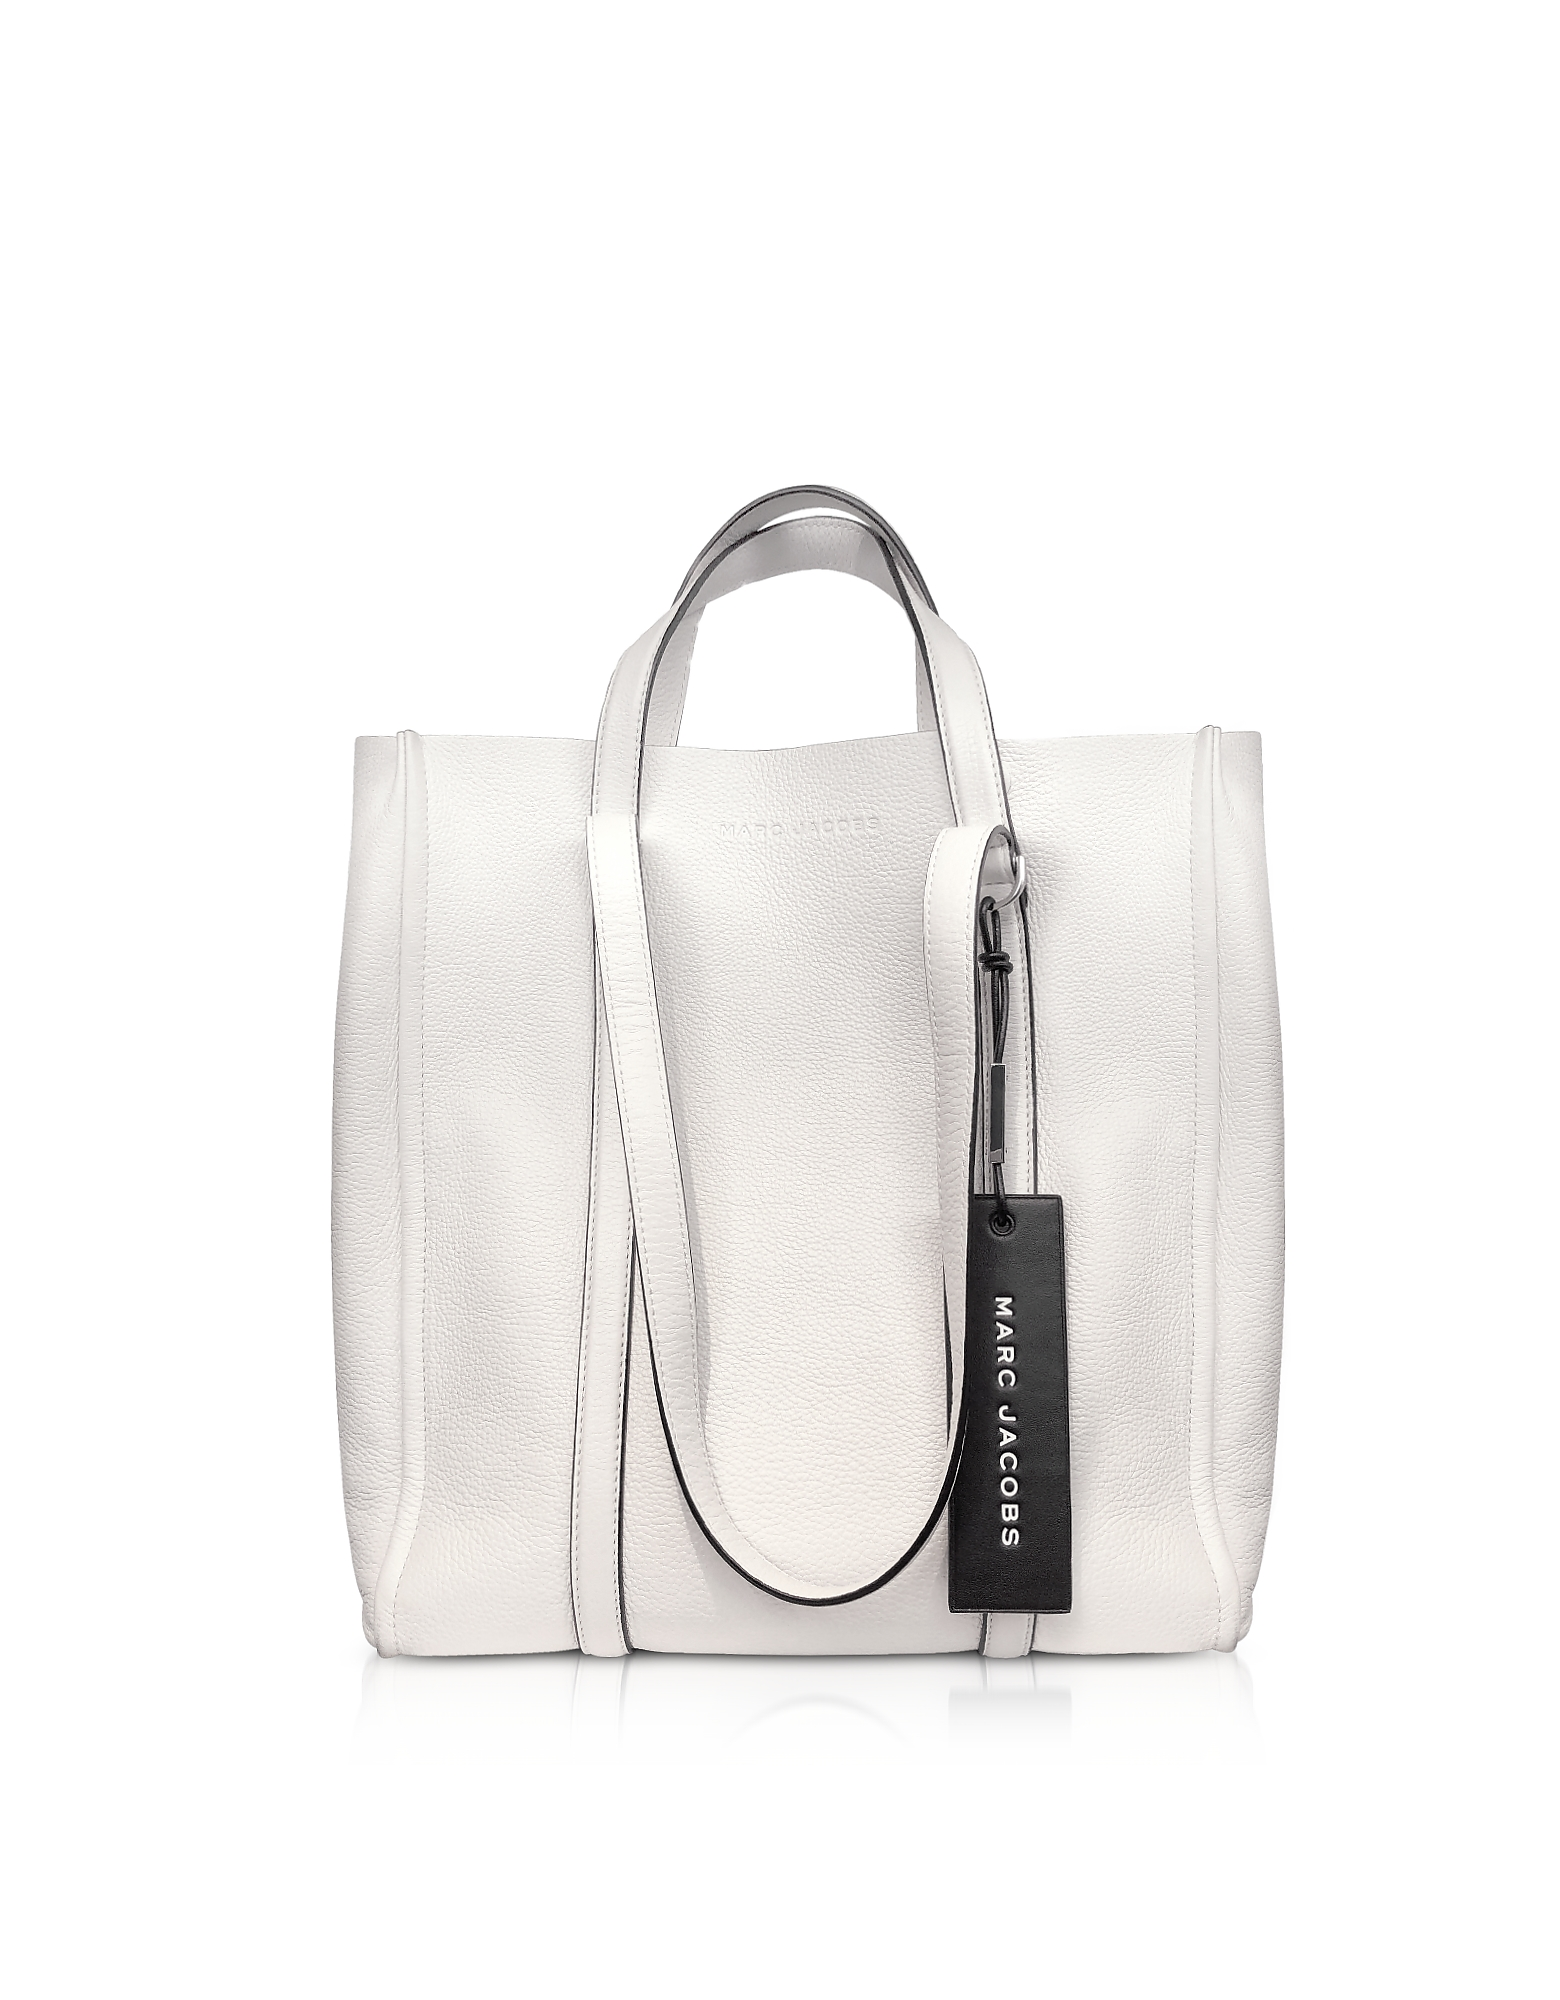 Marc Jacobs Handbags, The Tag Tote